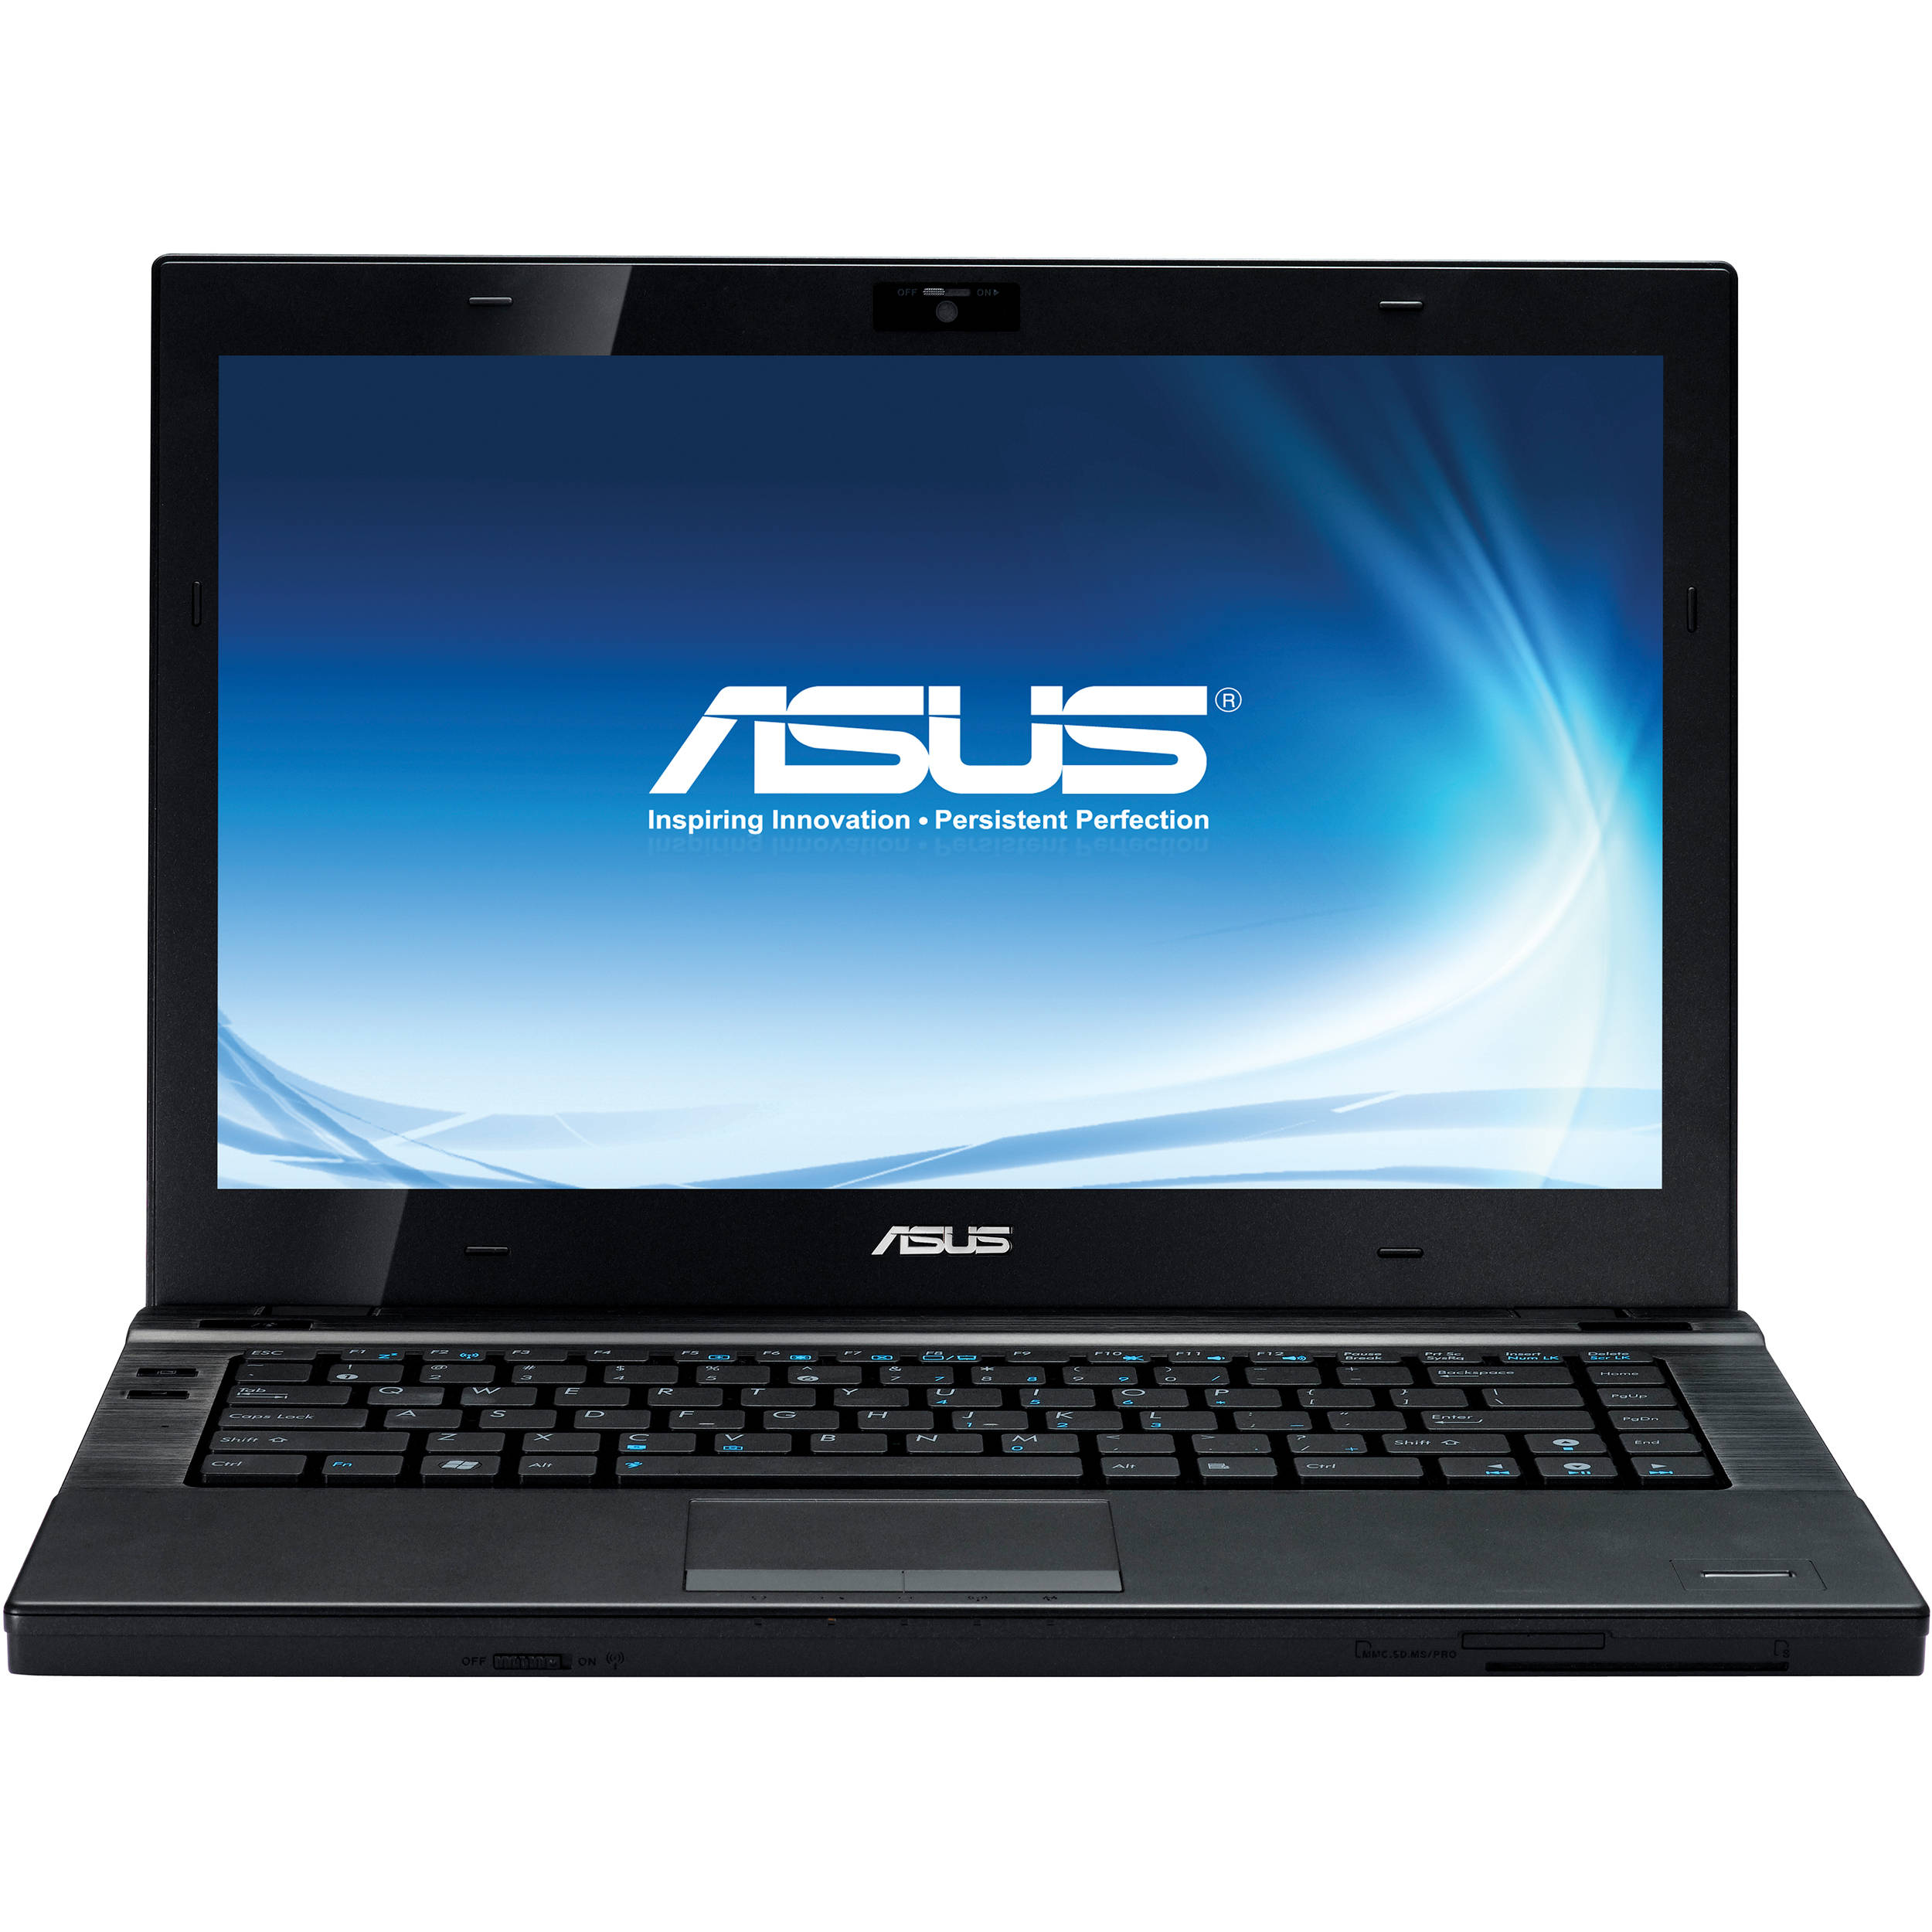 ASUS B43J NOTEBOOK INTEL WIFI DRIVER WINDOWS